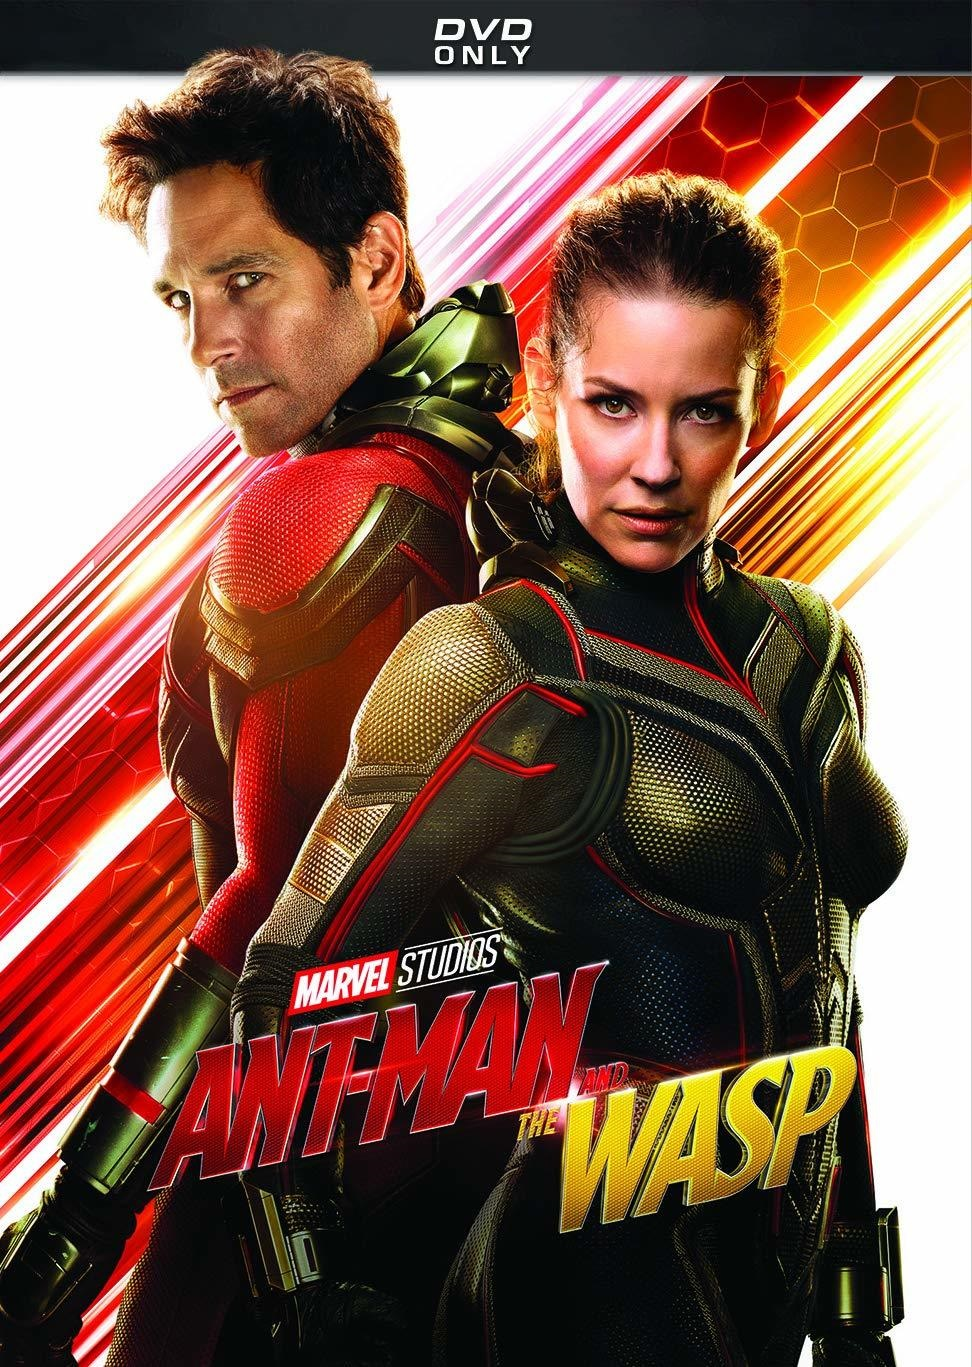 Ant-Man and the Wasp (video)